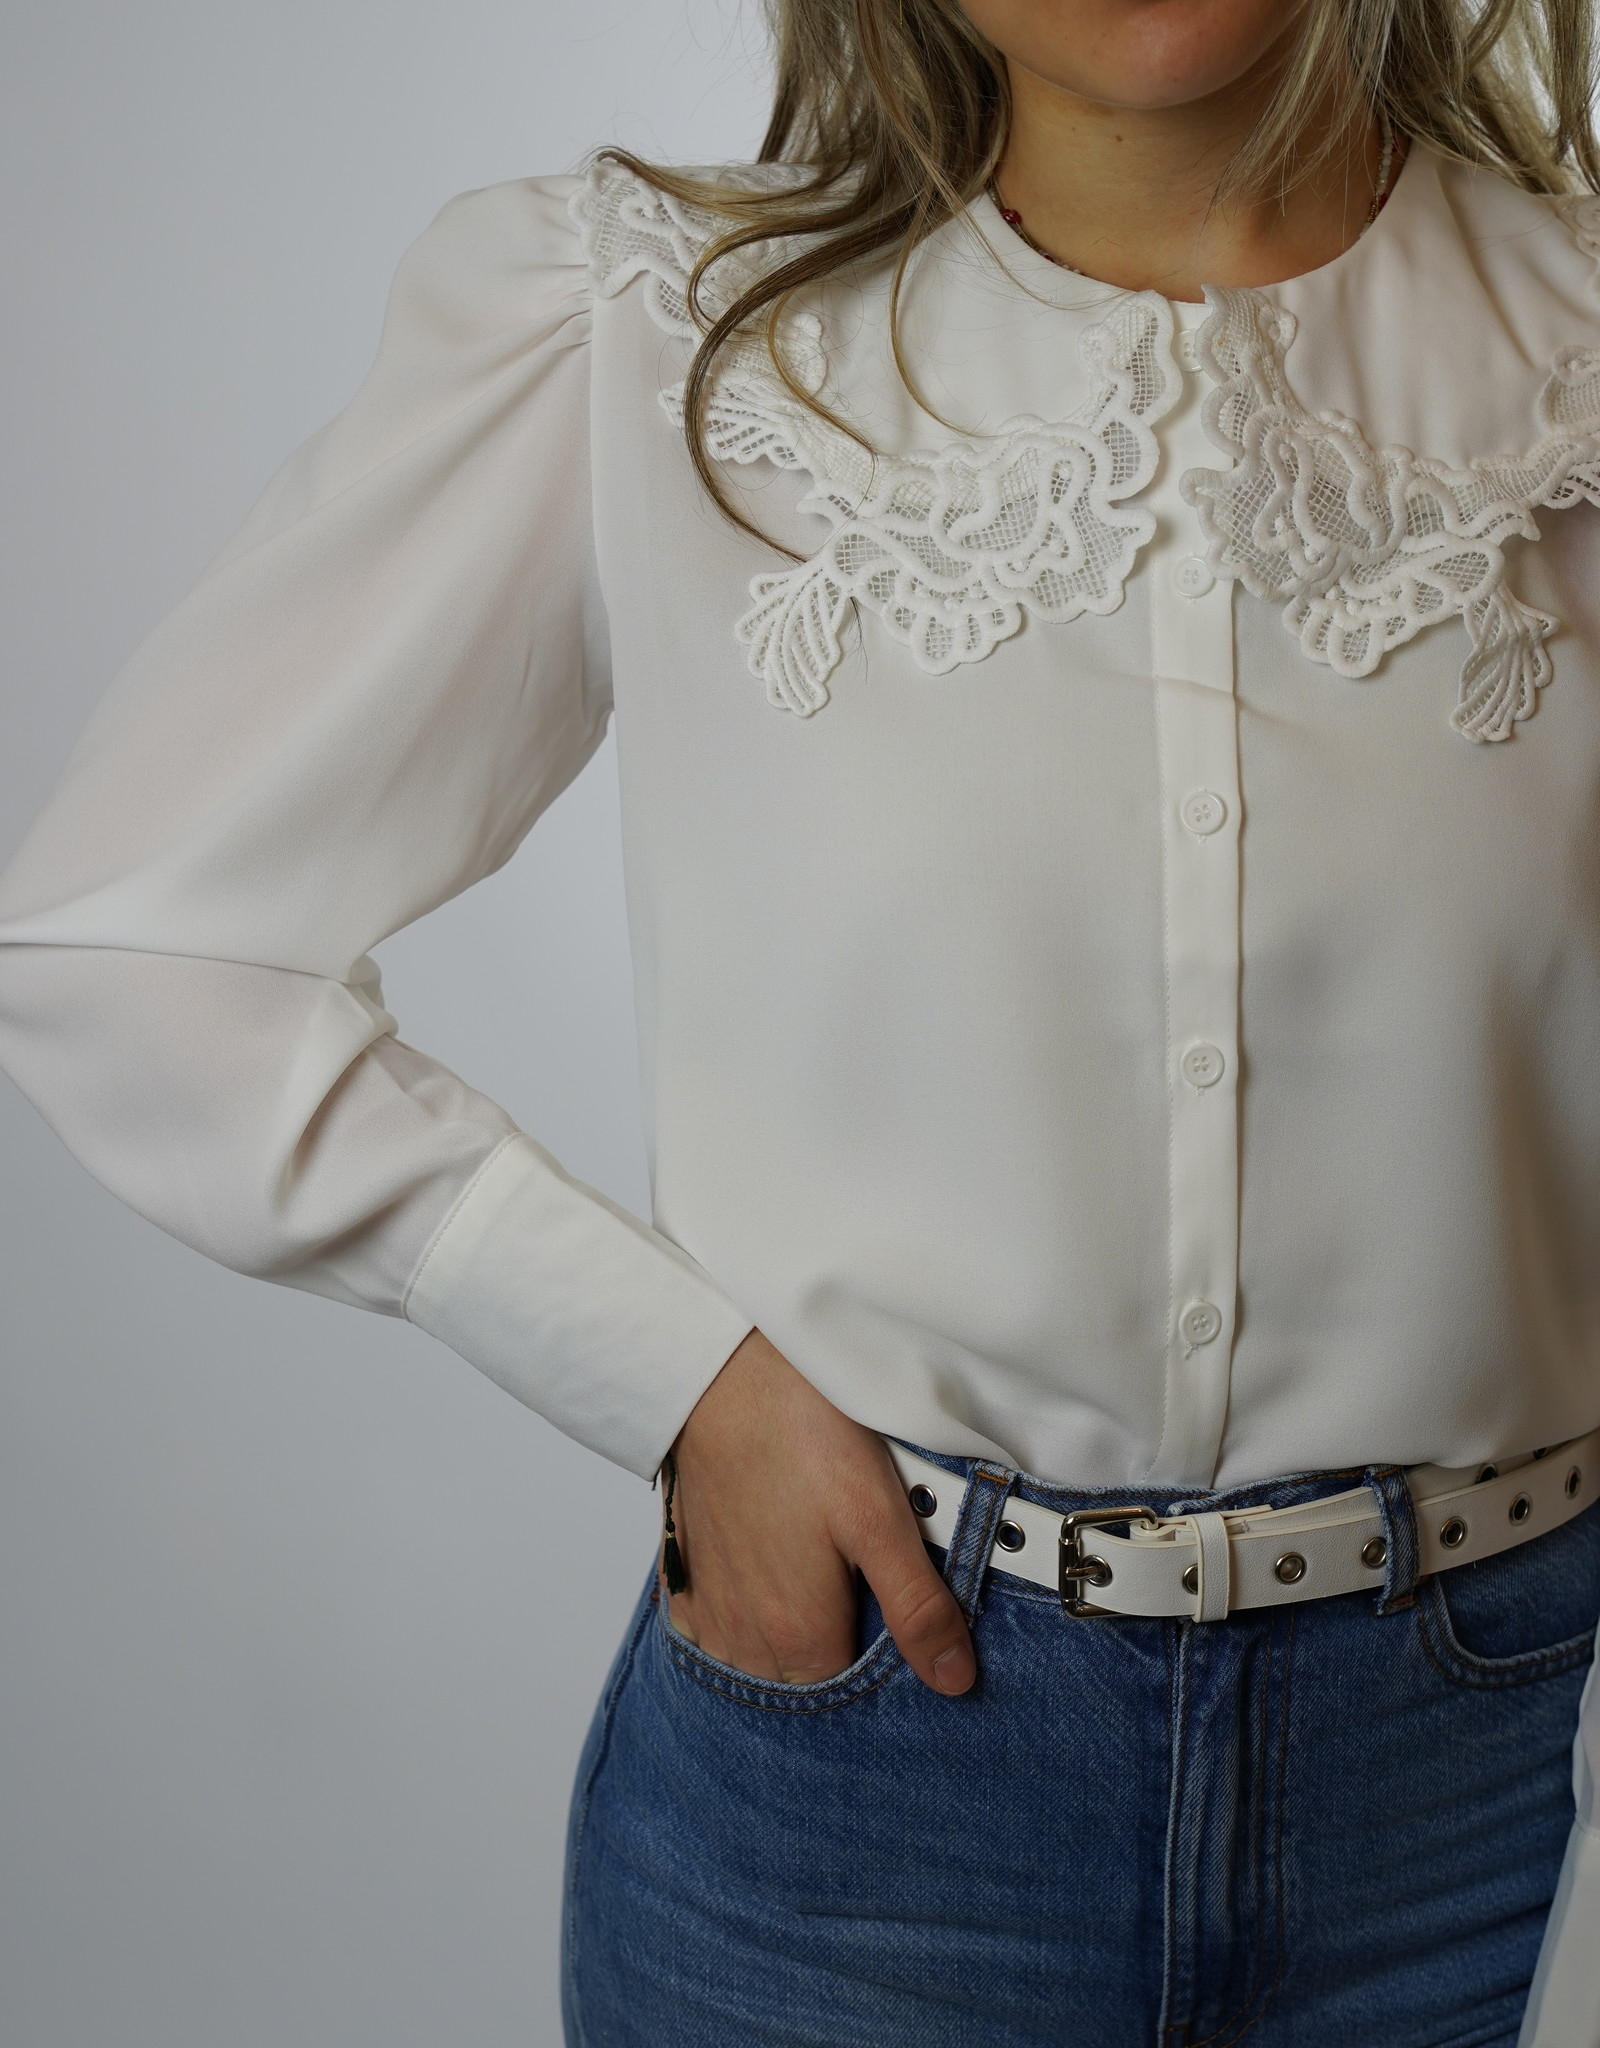 Make My Day Make My Day Fancy Collar Blouse Lace